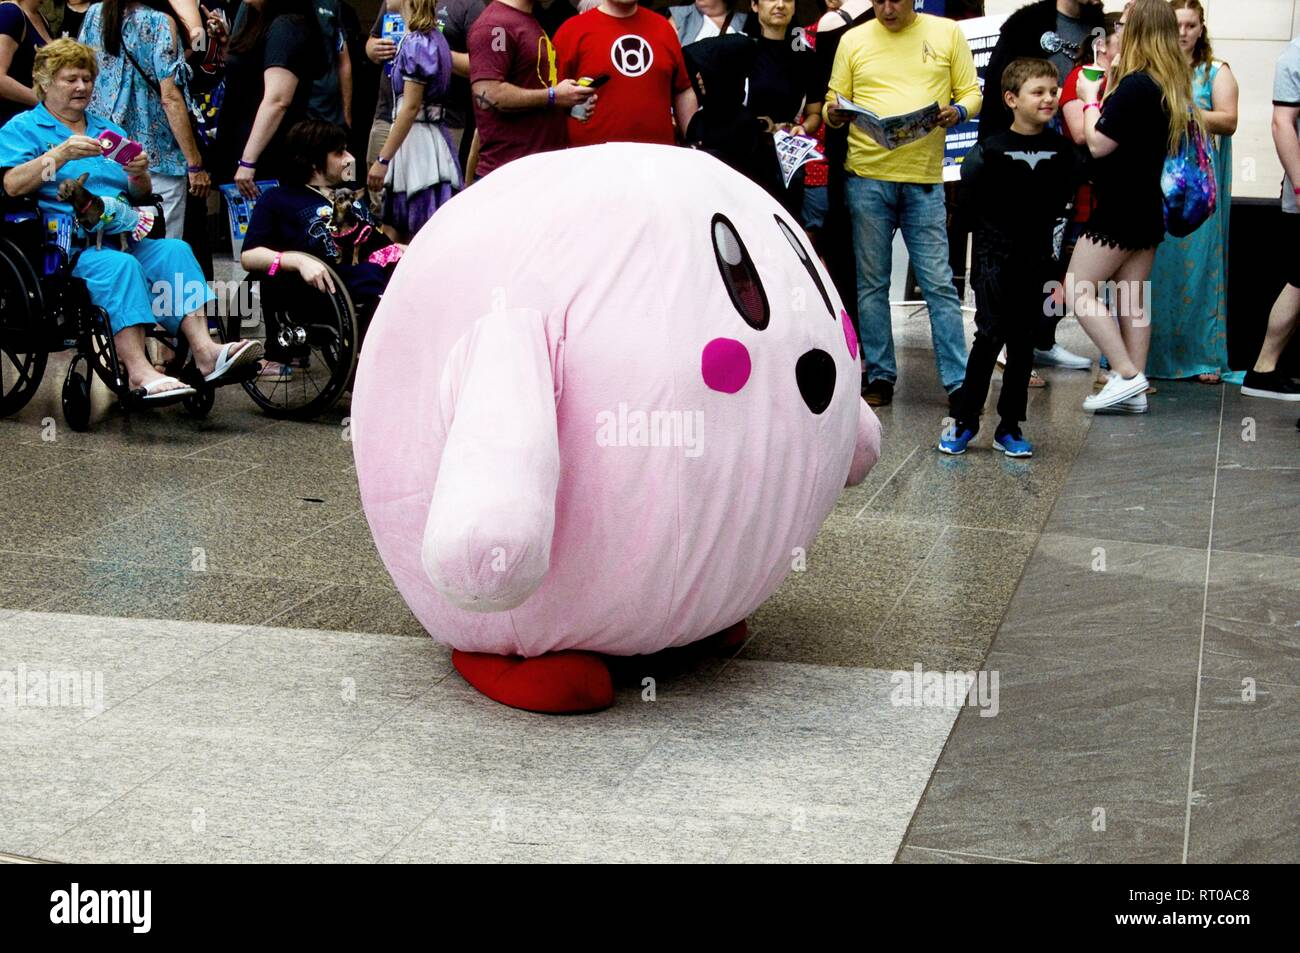 Kirby Cosplayer at Supercon (Raleigh Convention Center) Raleigh North Carolina, July 27th, 2018 - Stock Image